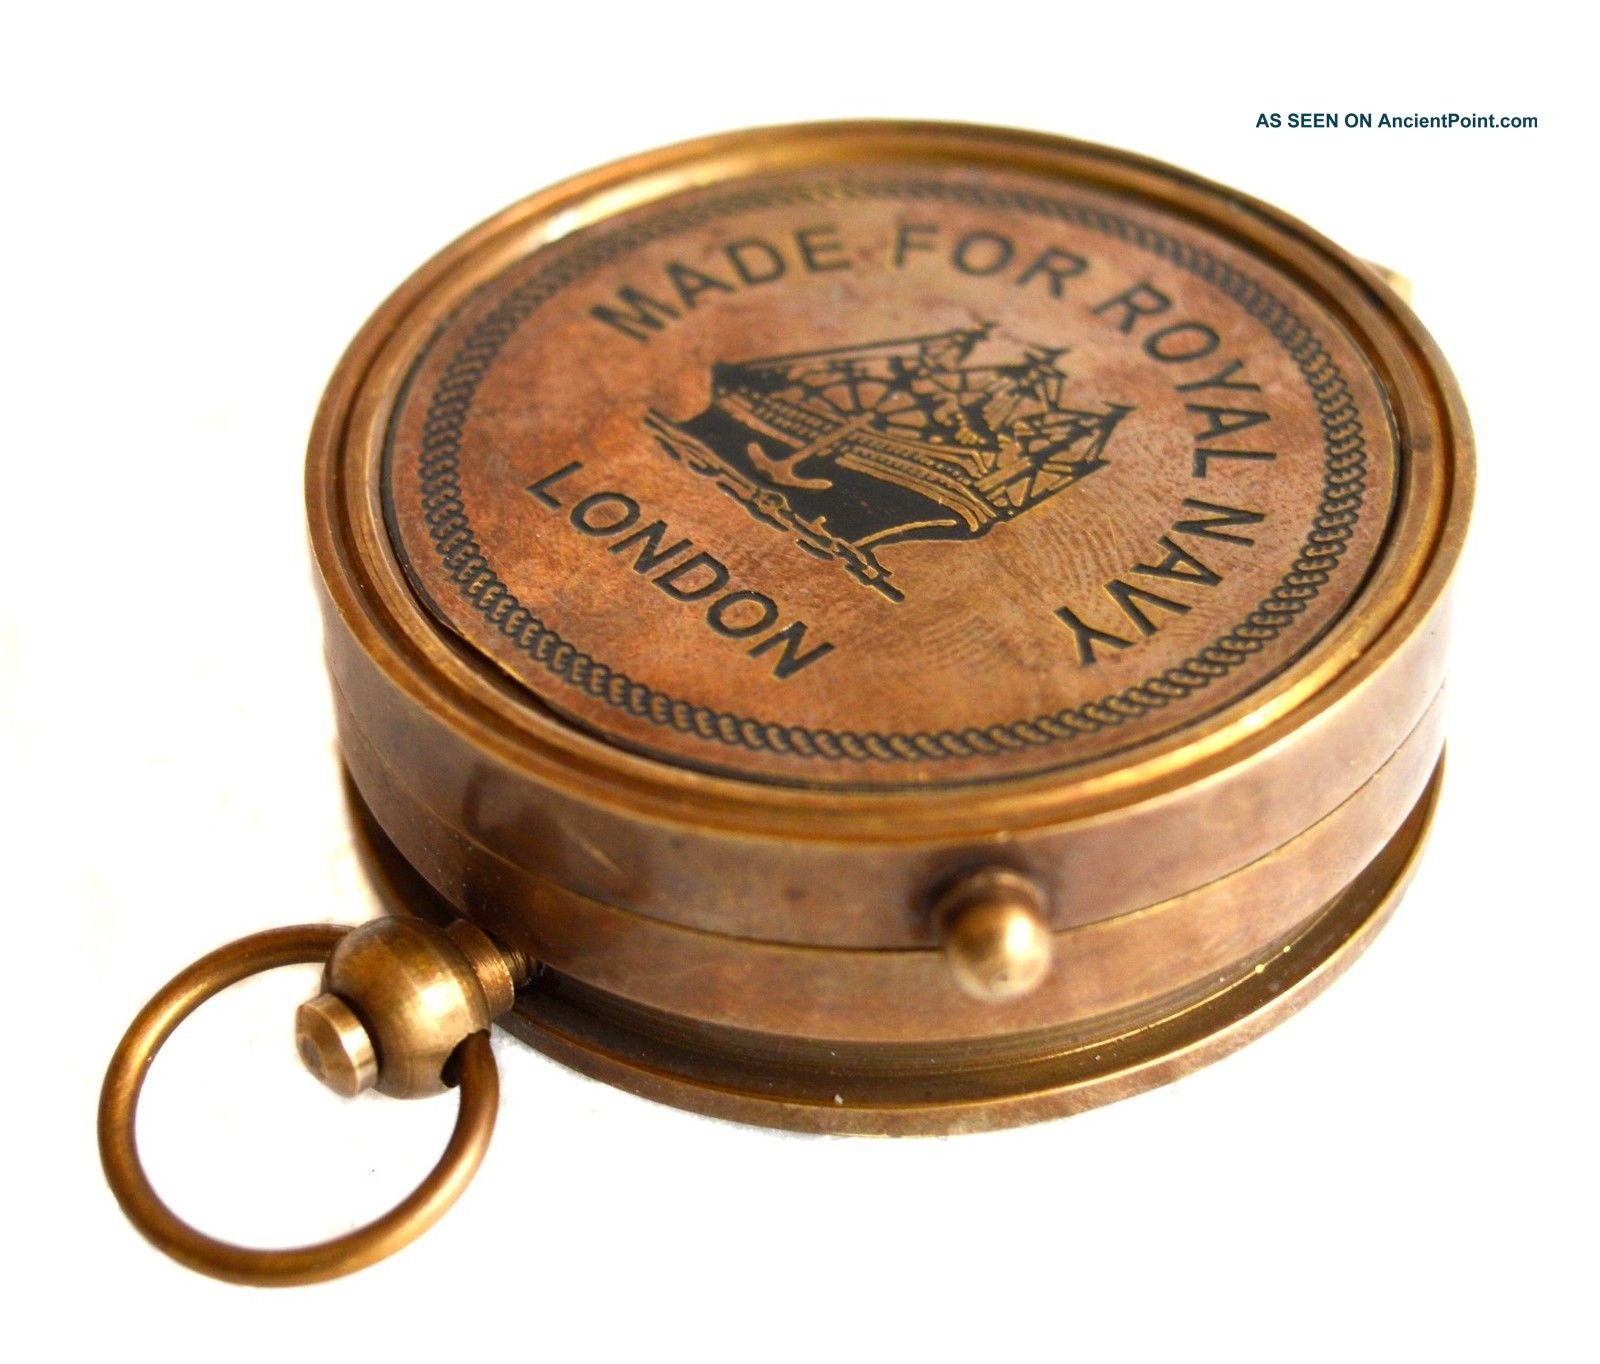 Antique Brass Lid Compass Royal Navy Nautical Collectible Thread Gift Compass Compasses photo